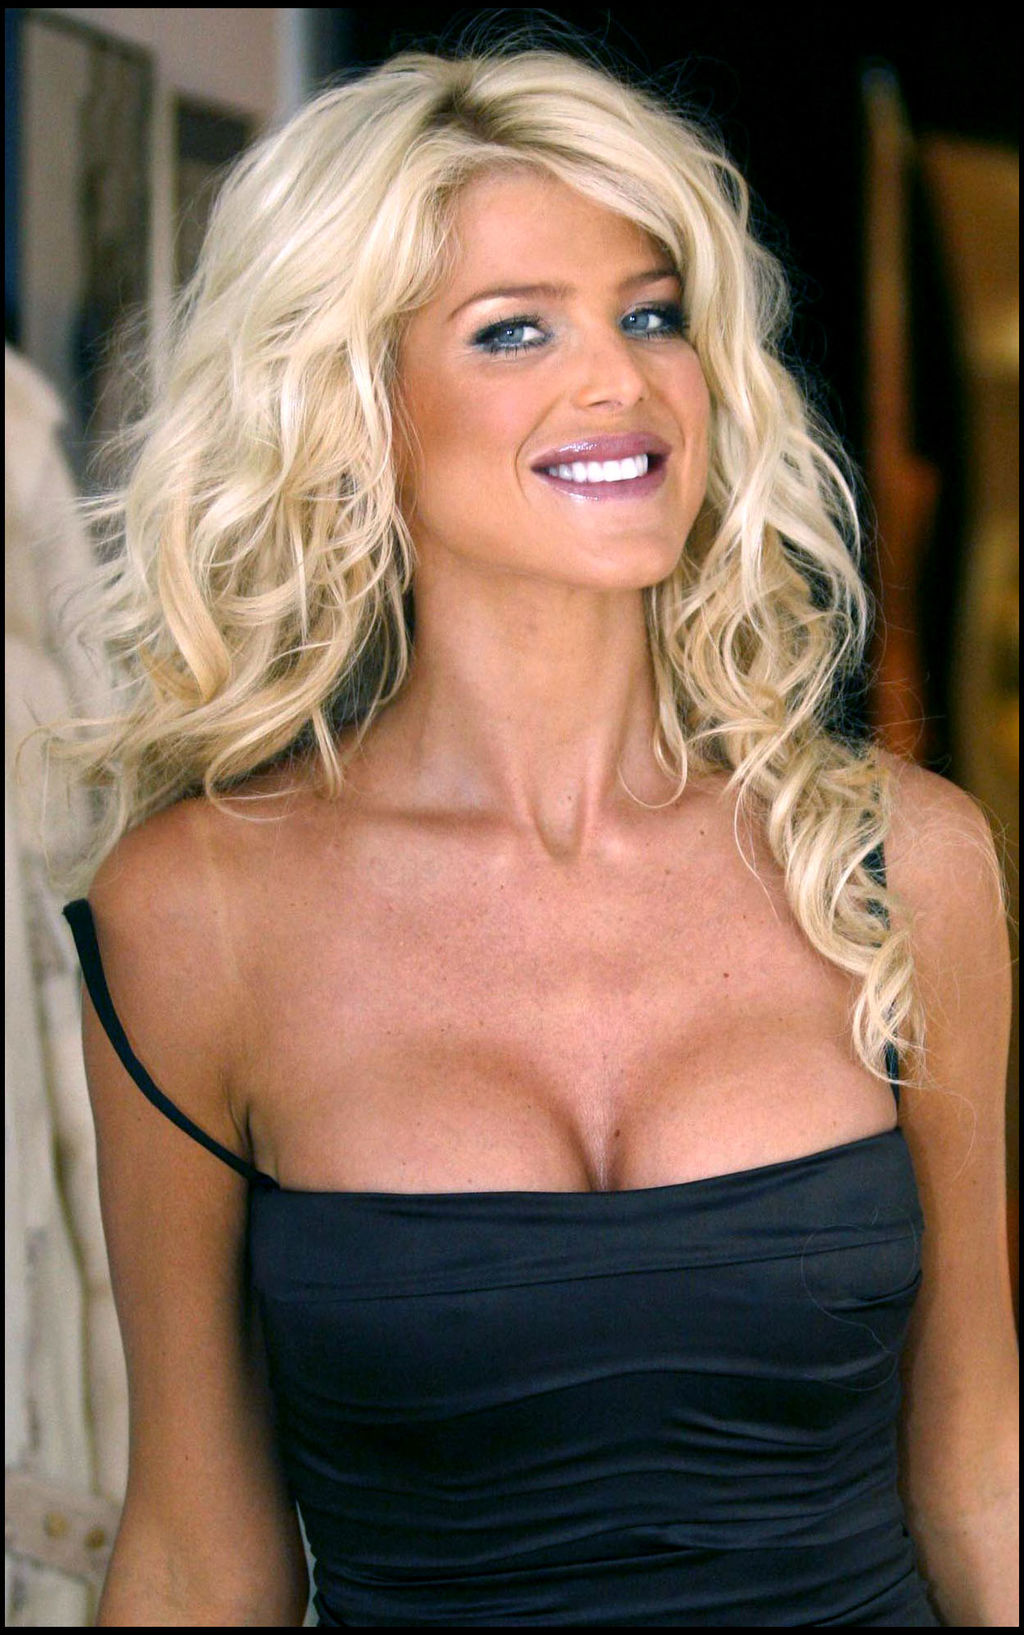 victoria-silvedth-having-sex-adventure-time-nude-fakes